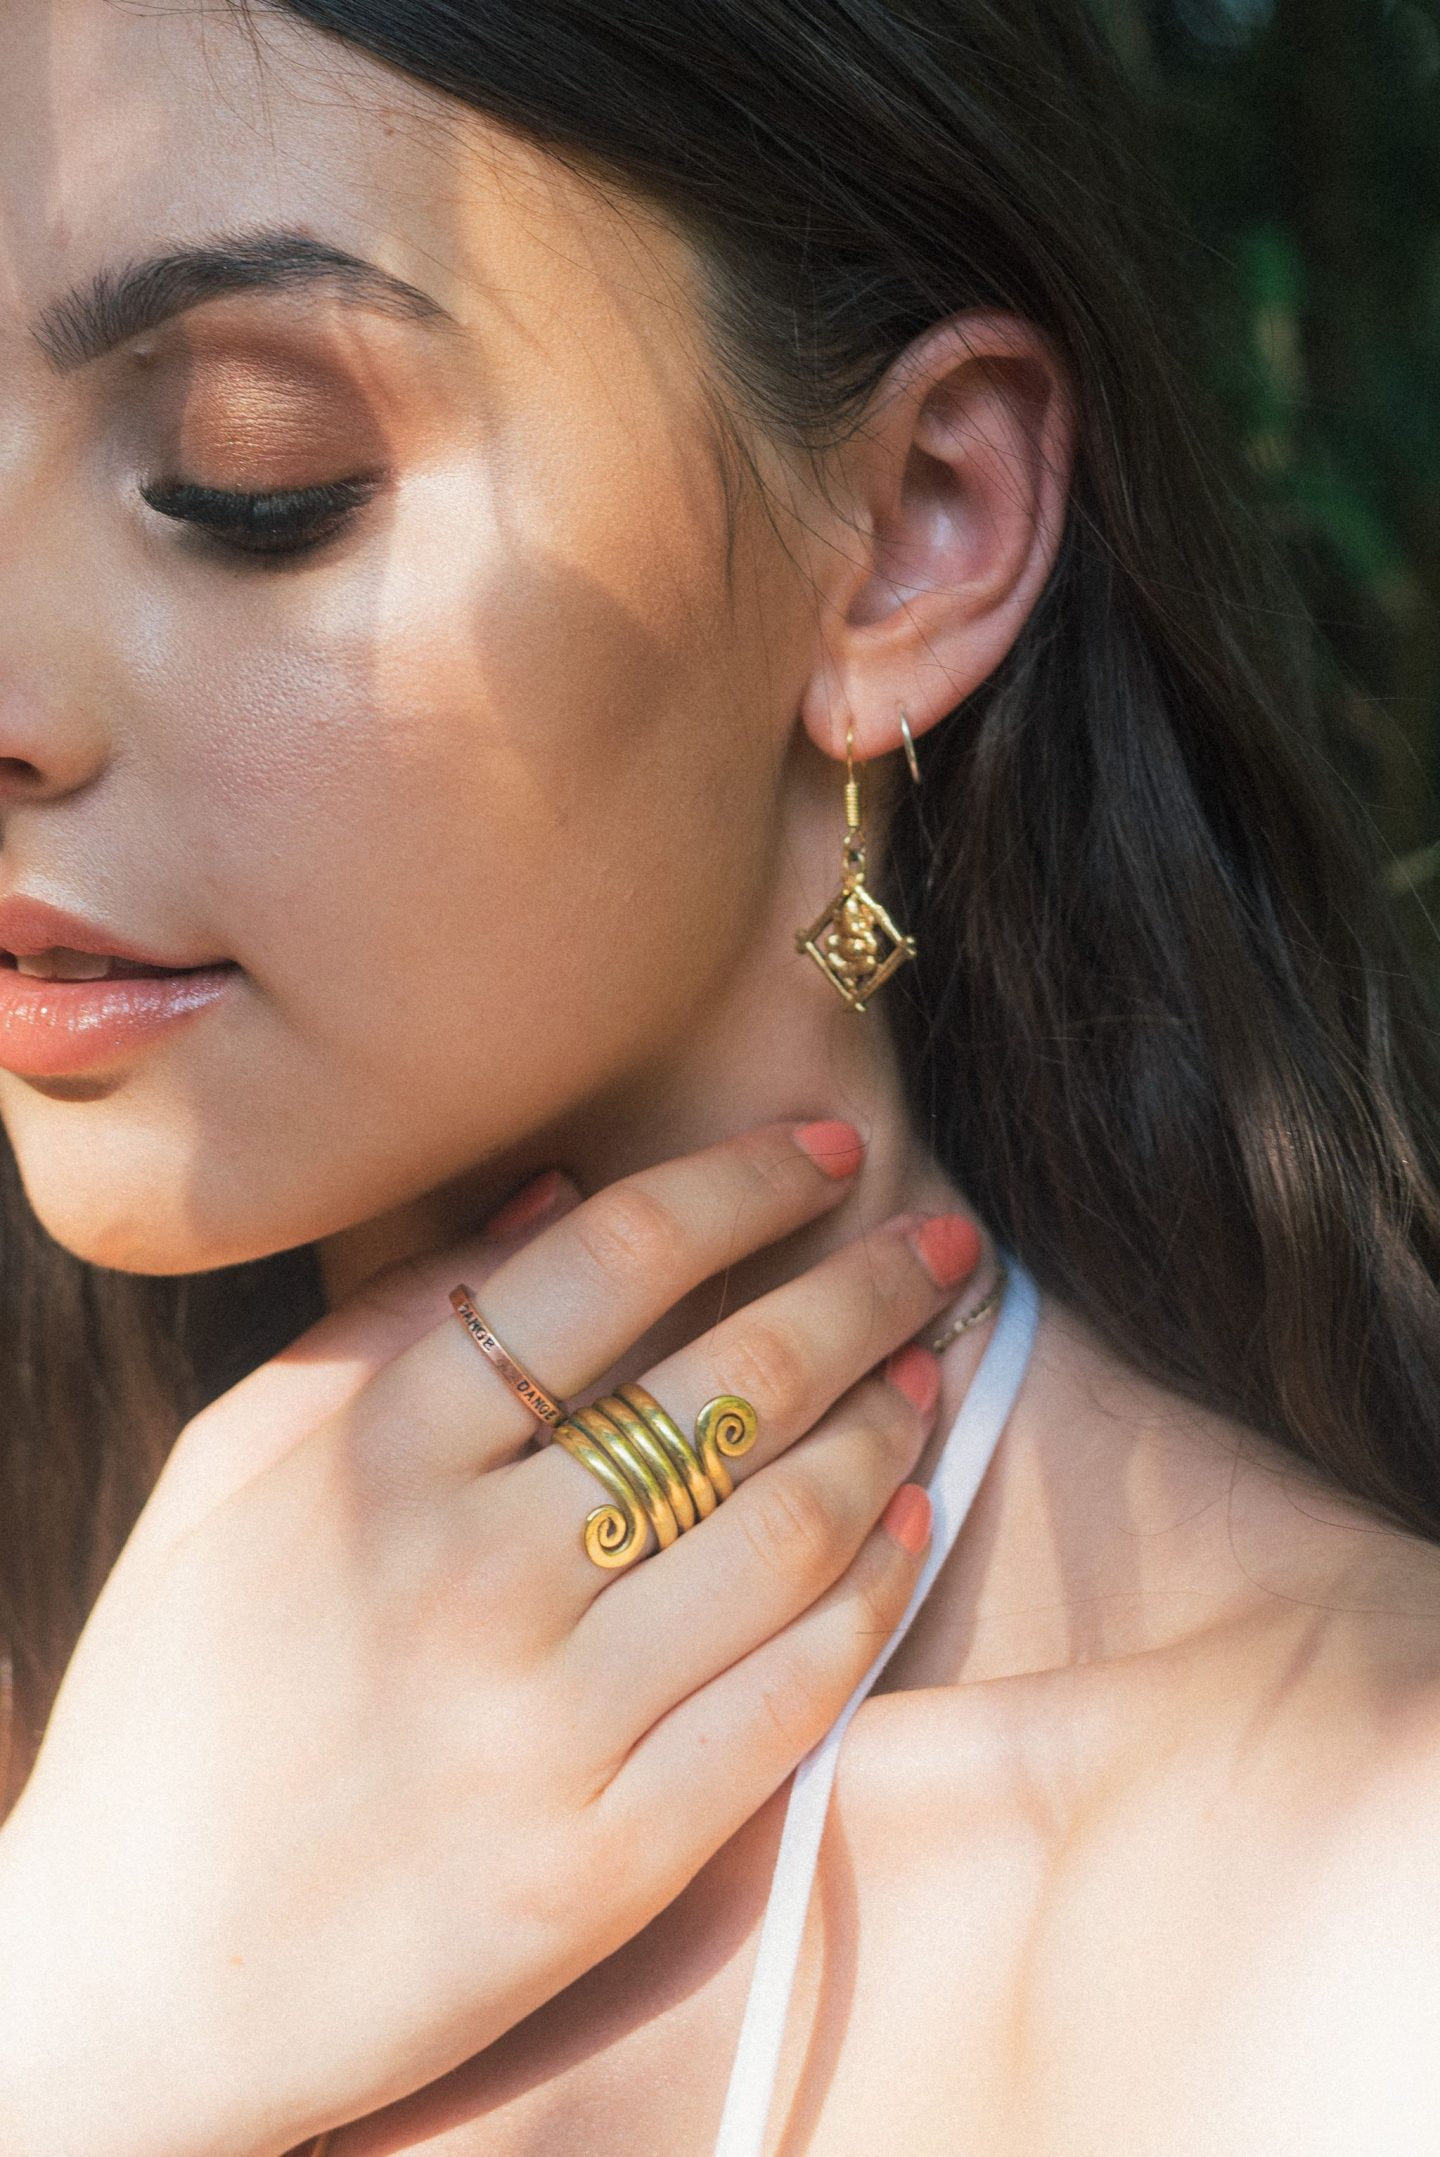 INTERESTING FACTS ABOUT HAND MADE JEWELLERY